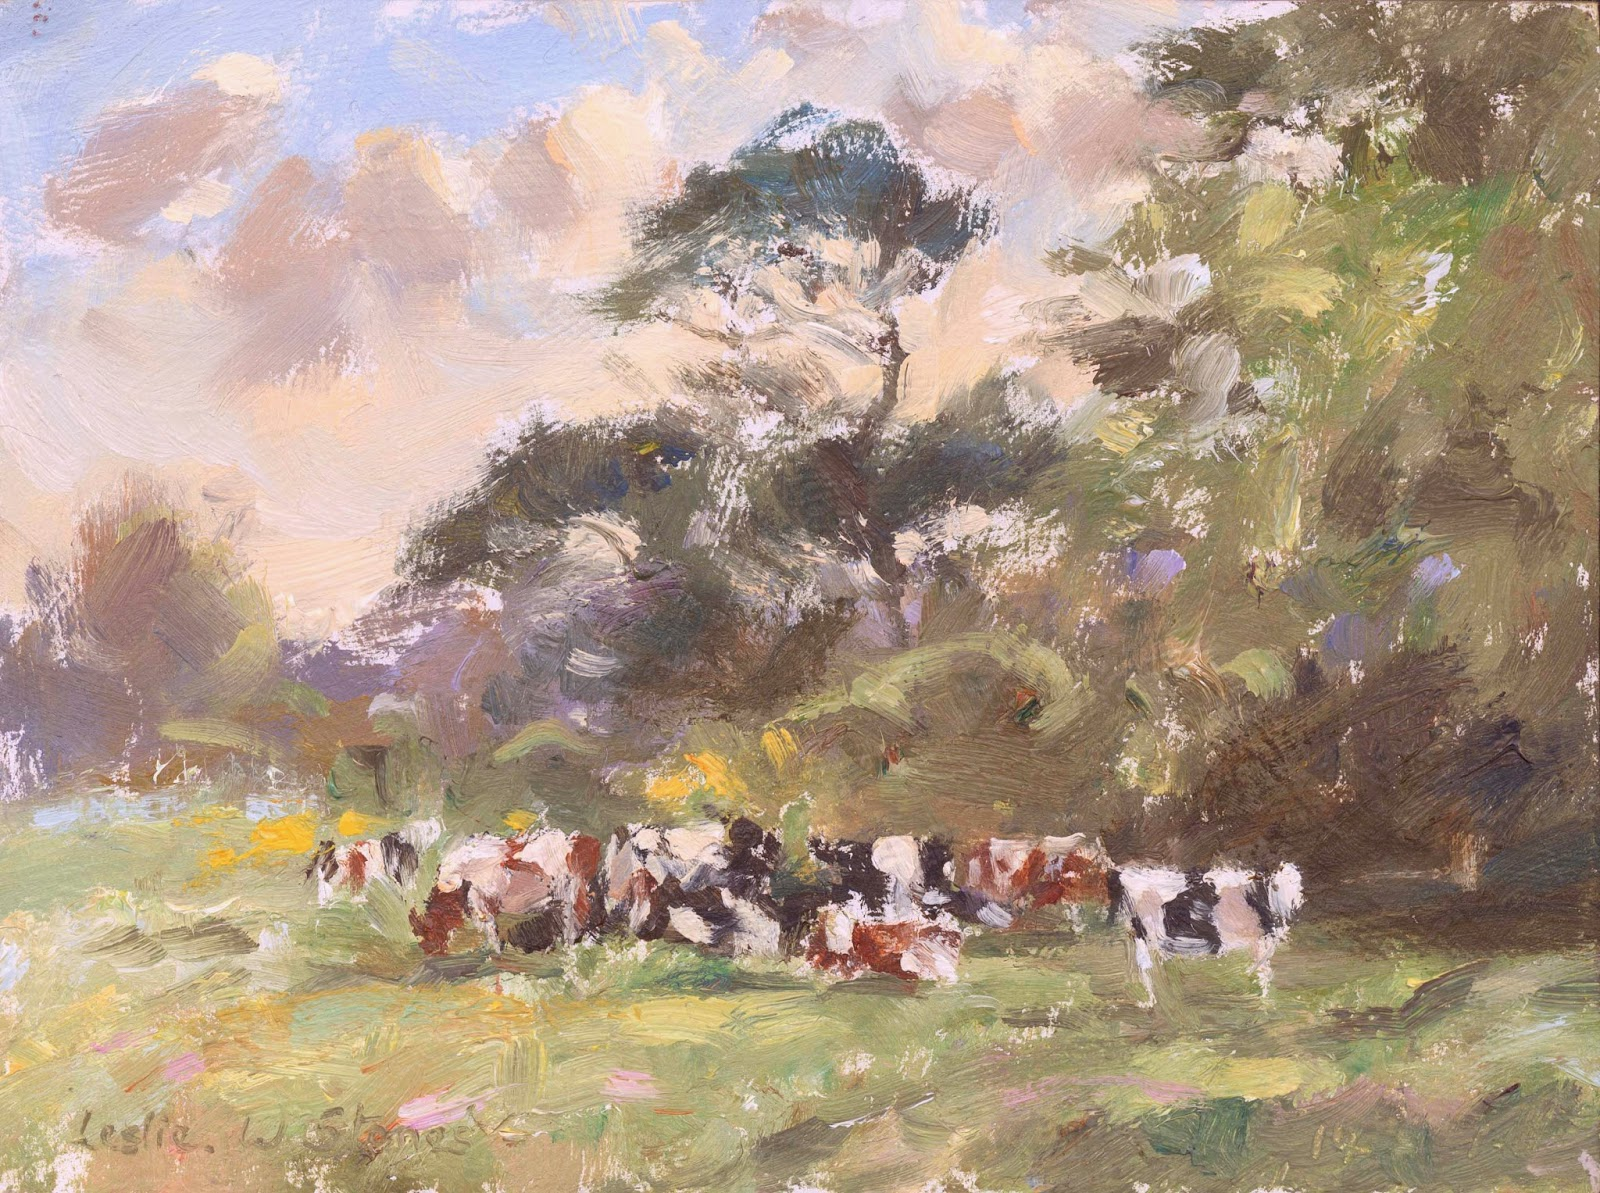 oil painting of cattle grazing beneath the trees.